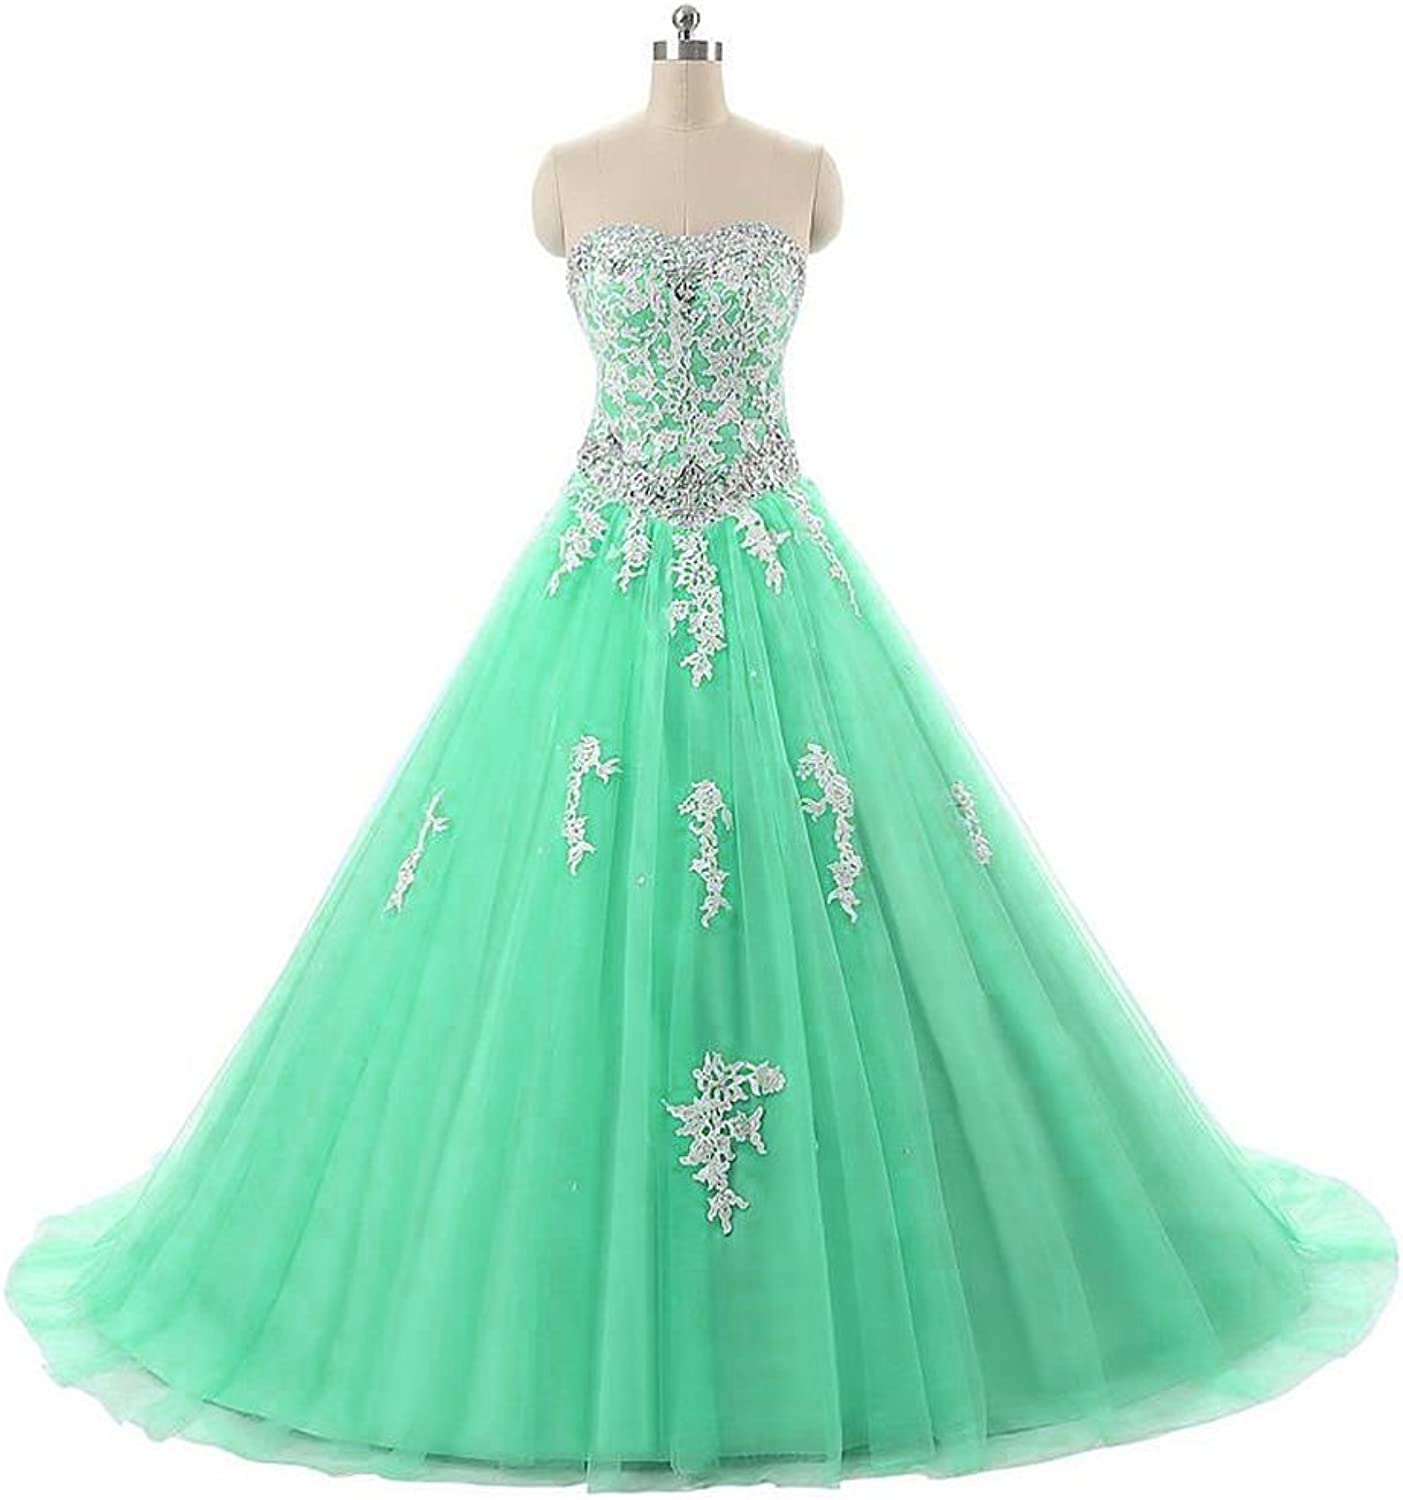 QiJunGe Women's Ball Gown Quinceanera Dresses Corset Prom Gowns with Appliqued